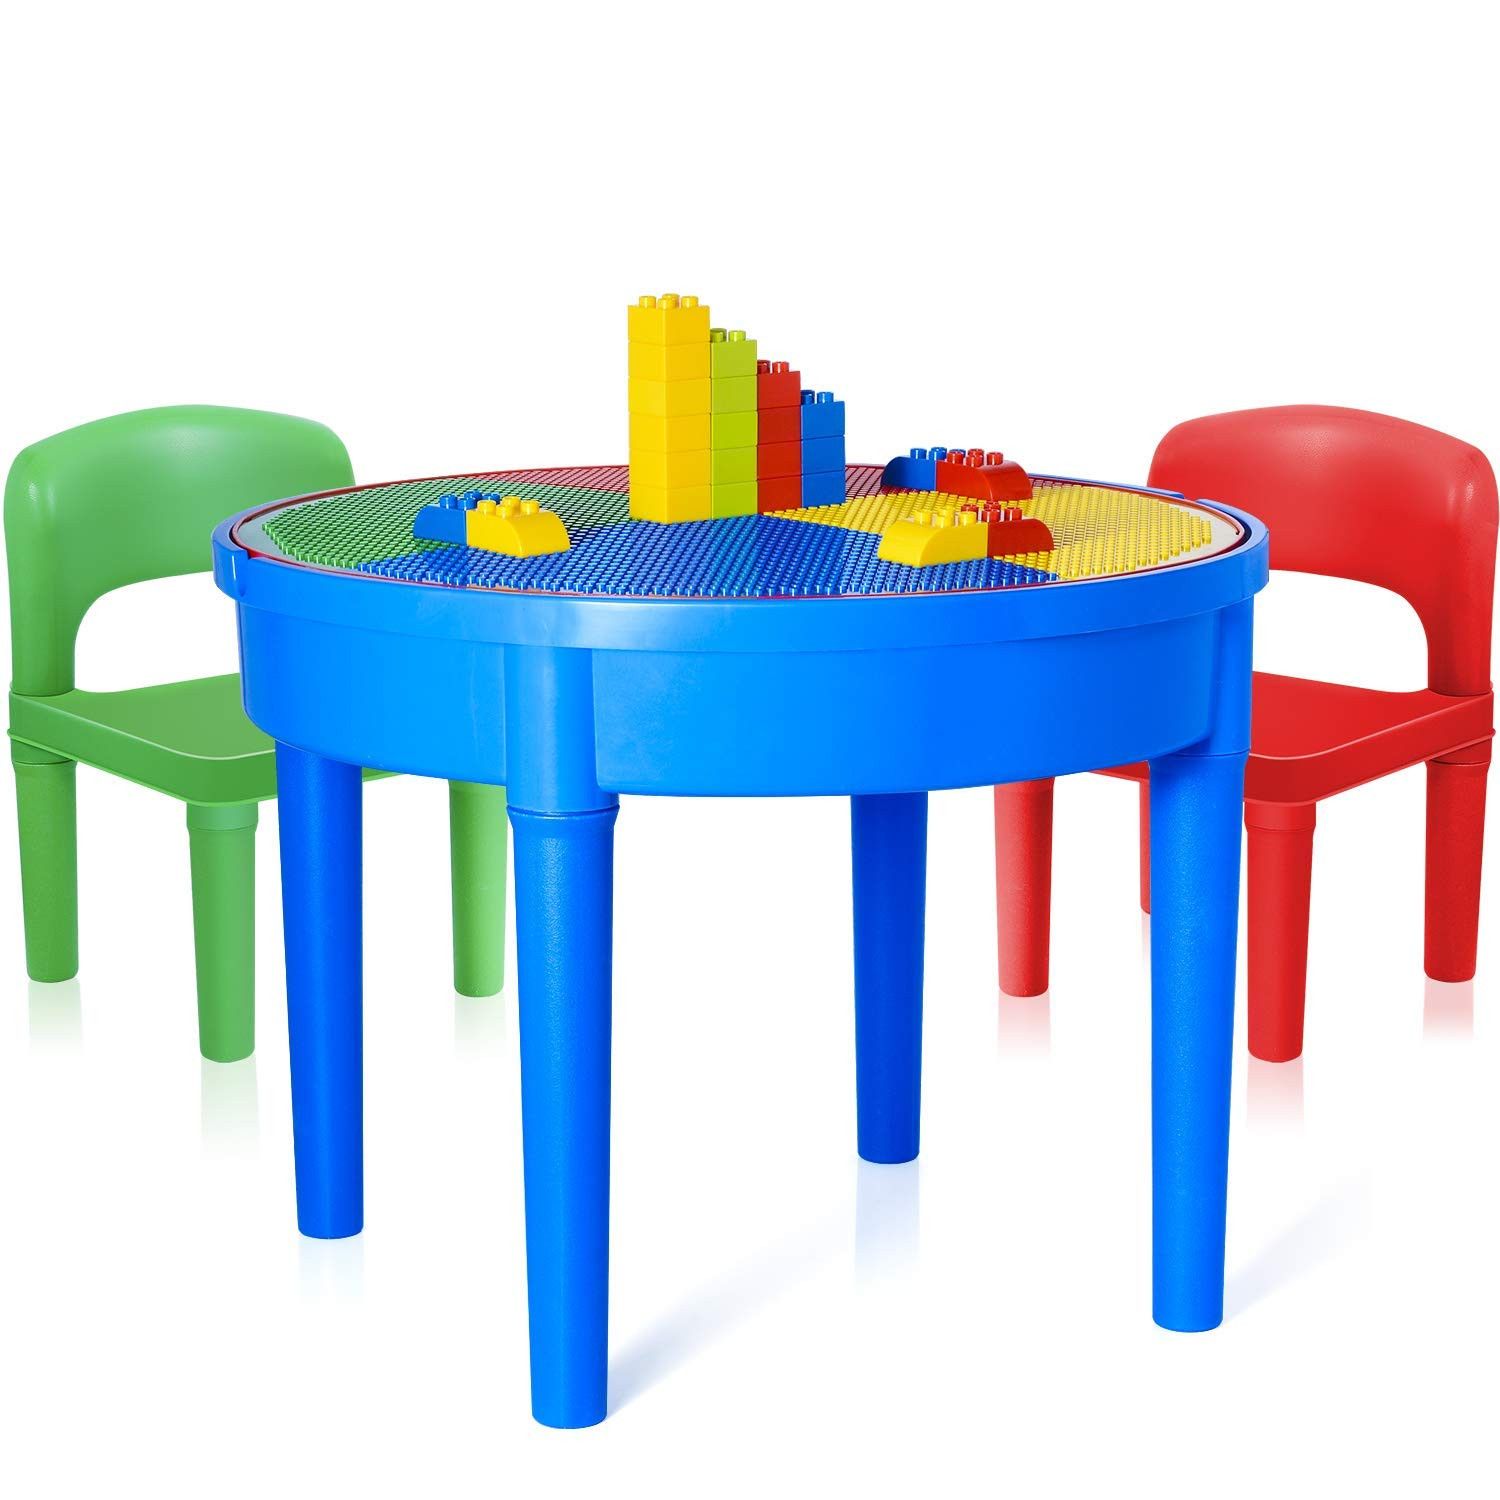 Top 5 Best Lego Table with Chairs in 2020- BestemsGuide